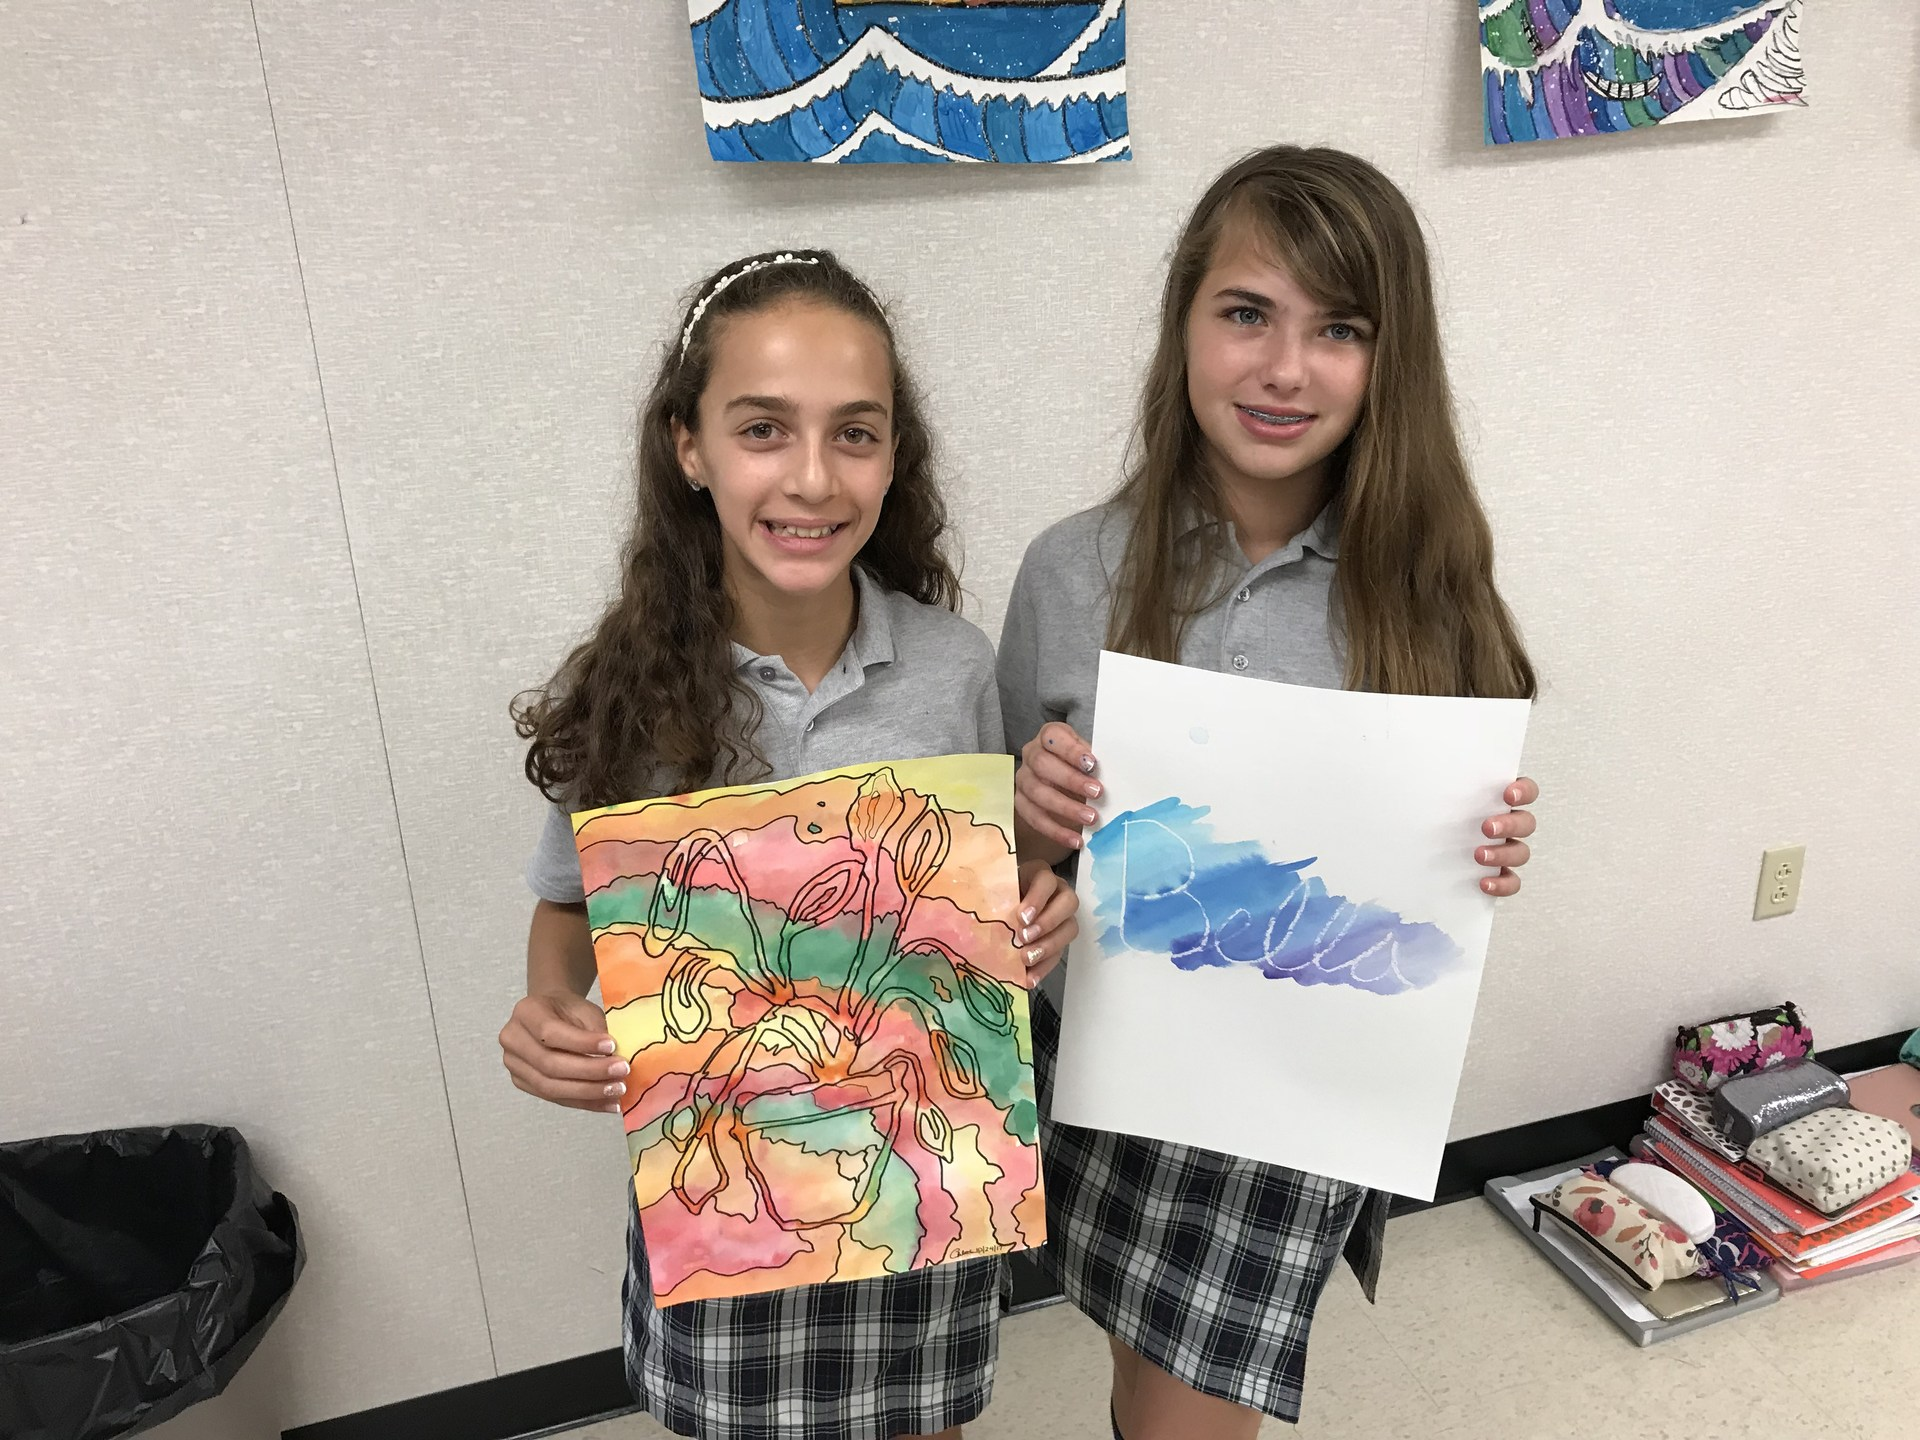 Two girls pose with drawings